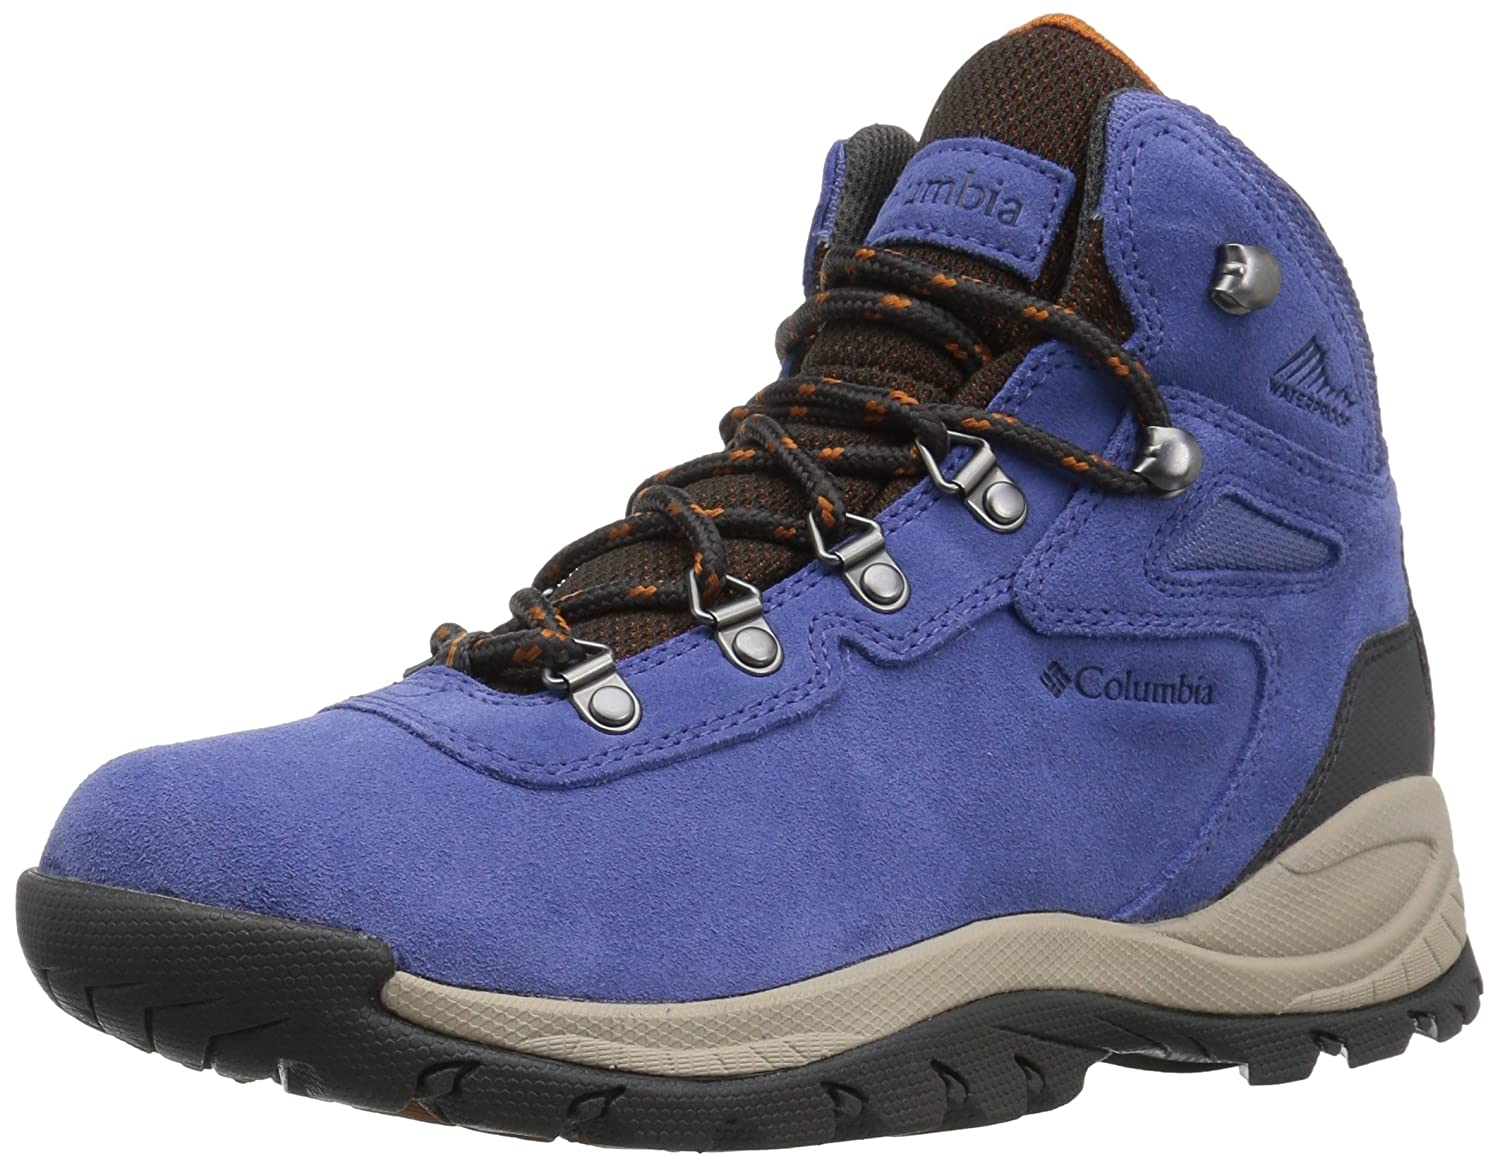 56a32ac4bc4 Columbia Women's Newton Ridge Plus Waterproof Amped Boot, Ankle Support,  High-Traction Grip